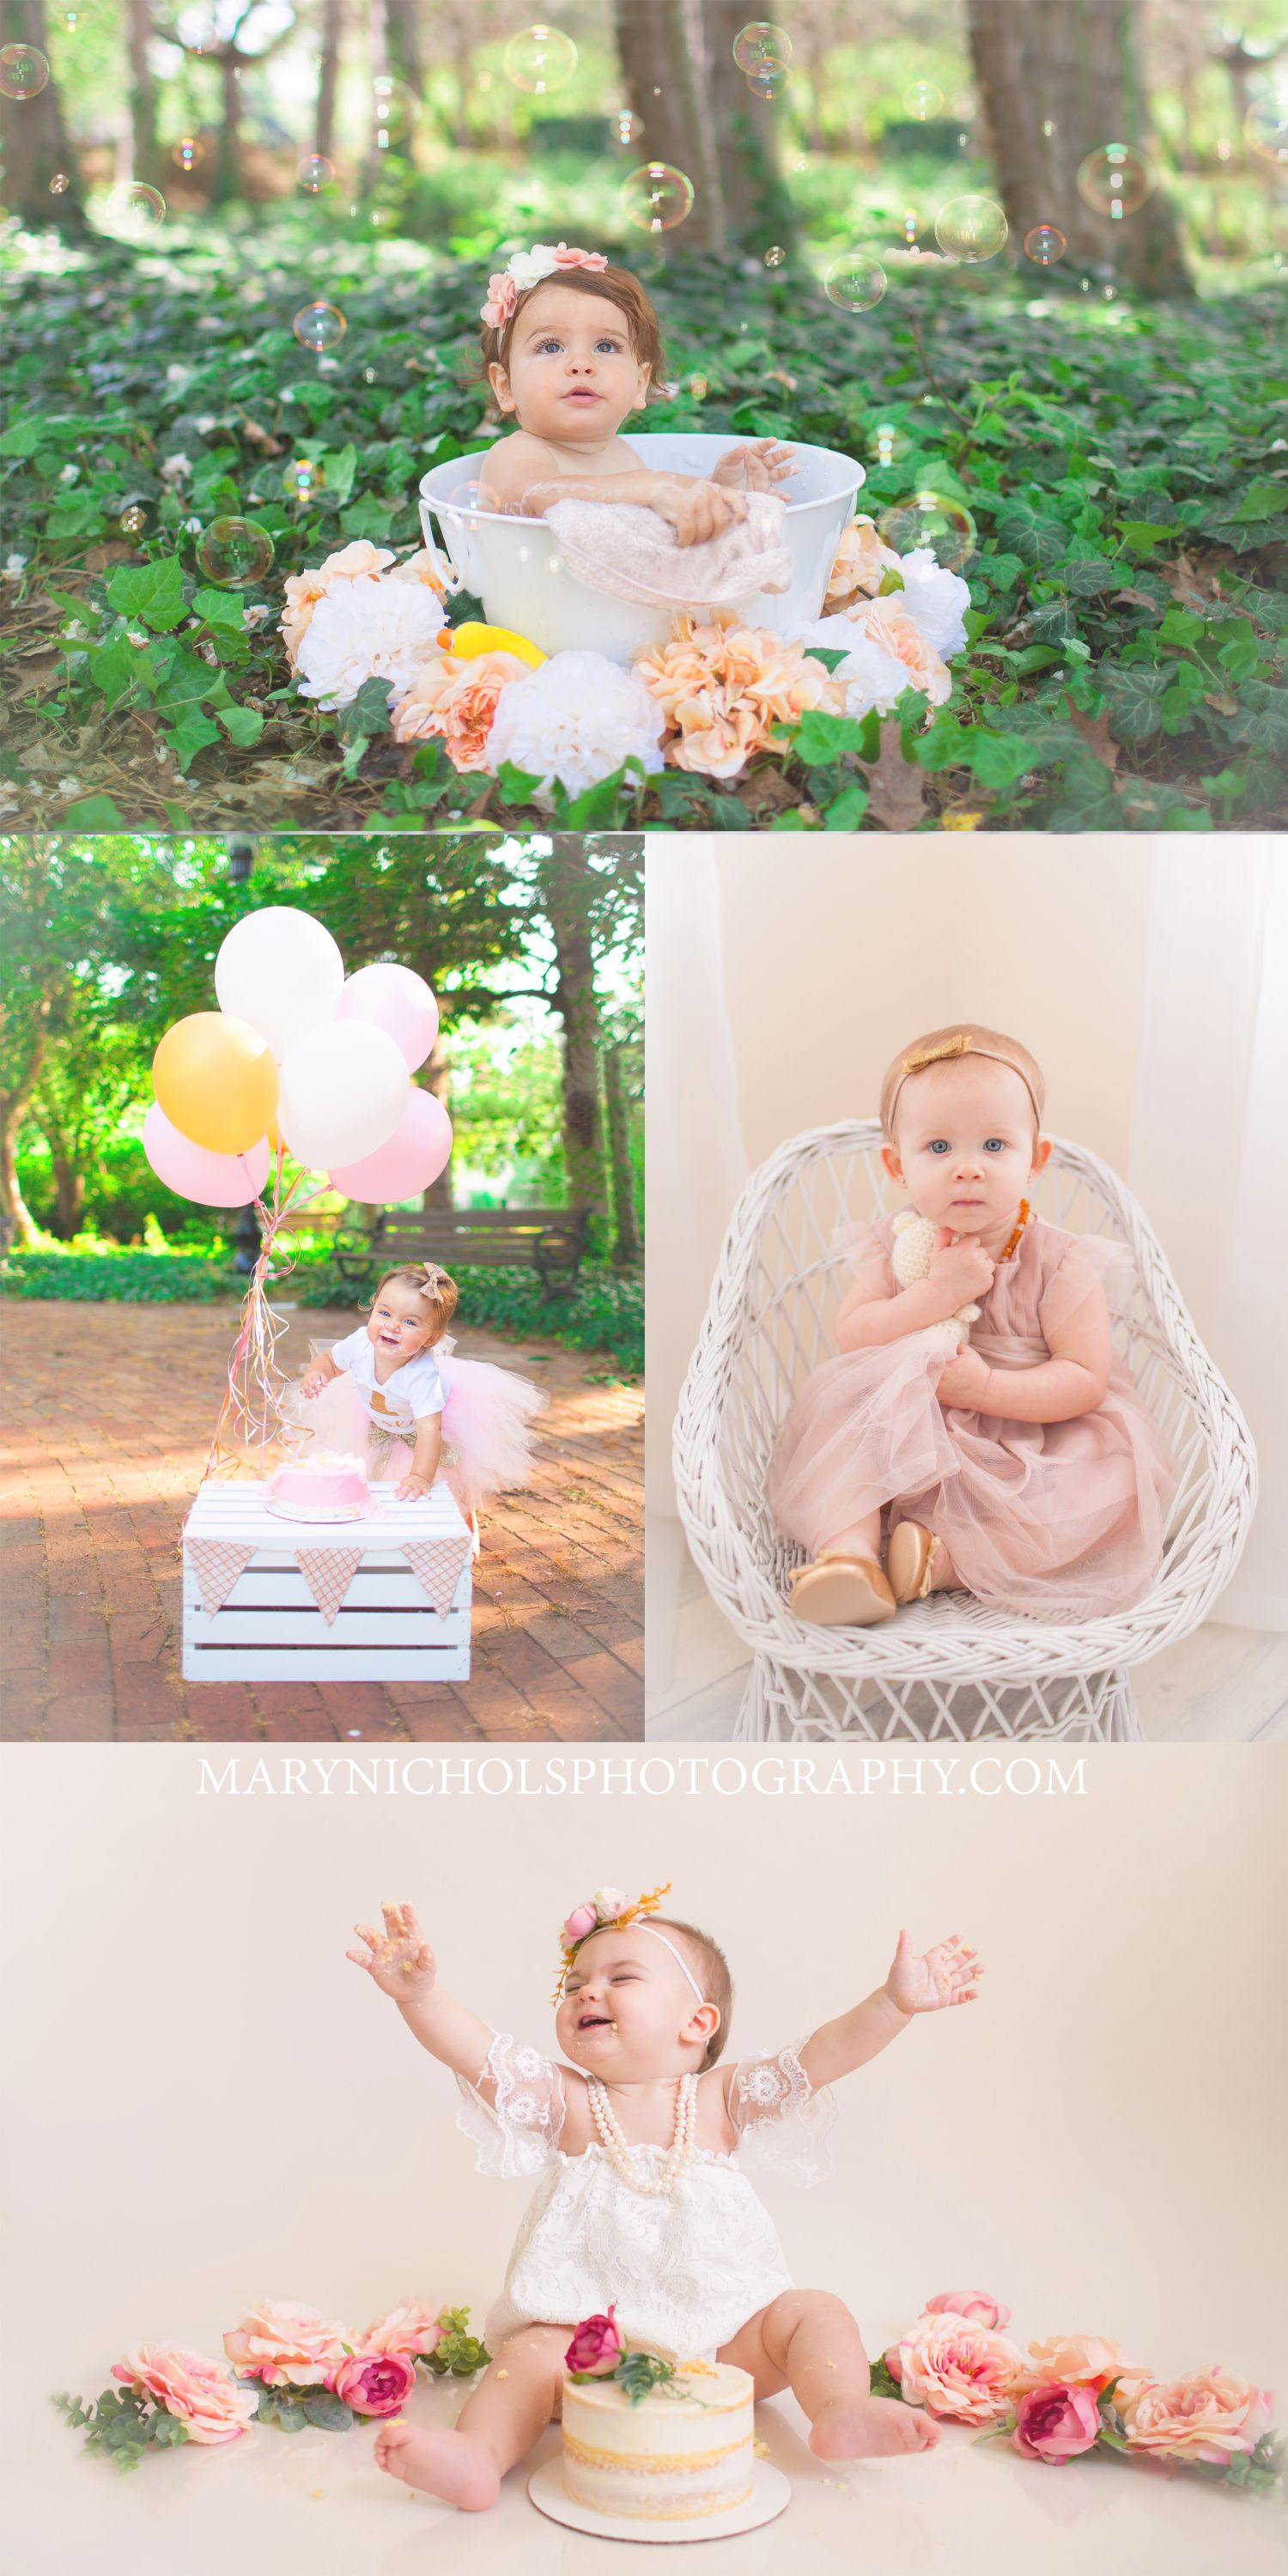 Photoshoot Ideas For Baby Girl At Home : photoshoot, ideas, PHOTOSHOOT, Click, Photoshoot,, Photoshoot, Girl,, Month, Picture, Ideas